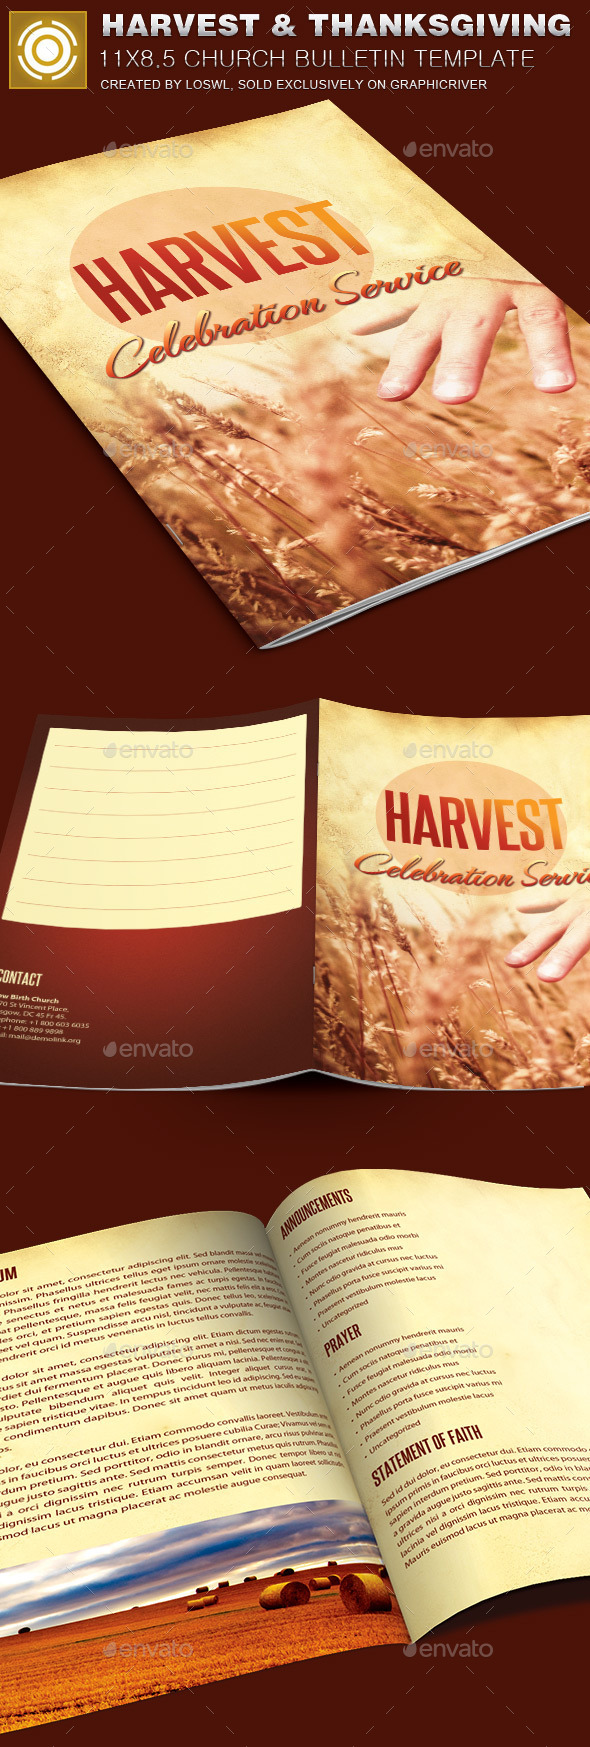 Harvest and Thanksgiving Church Bulletin Template - Informational Brochures